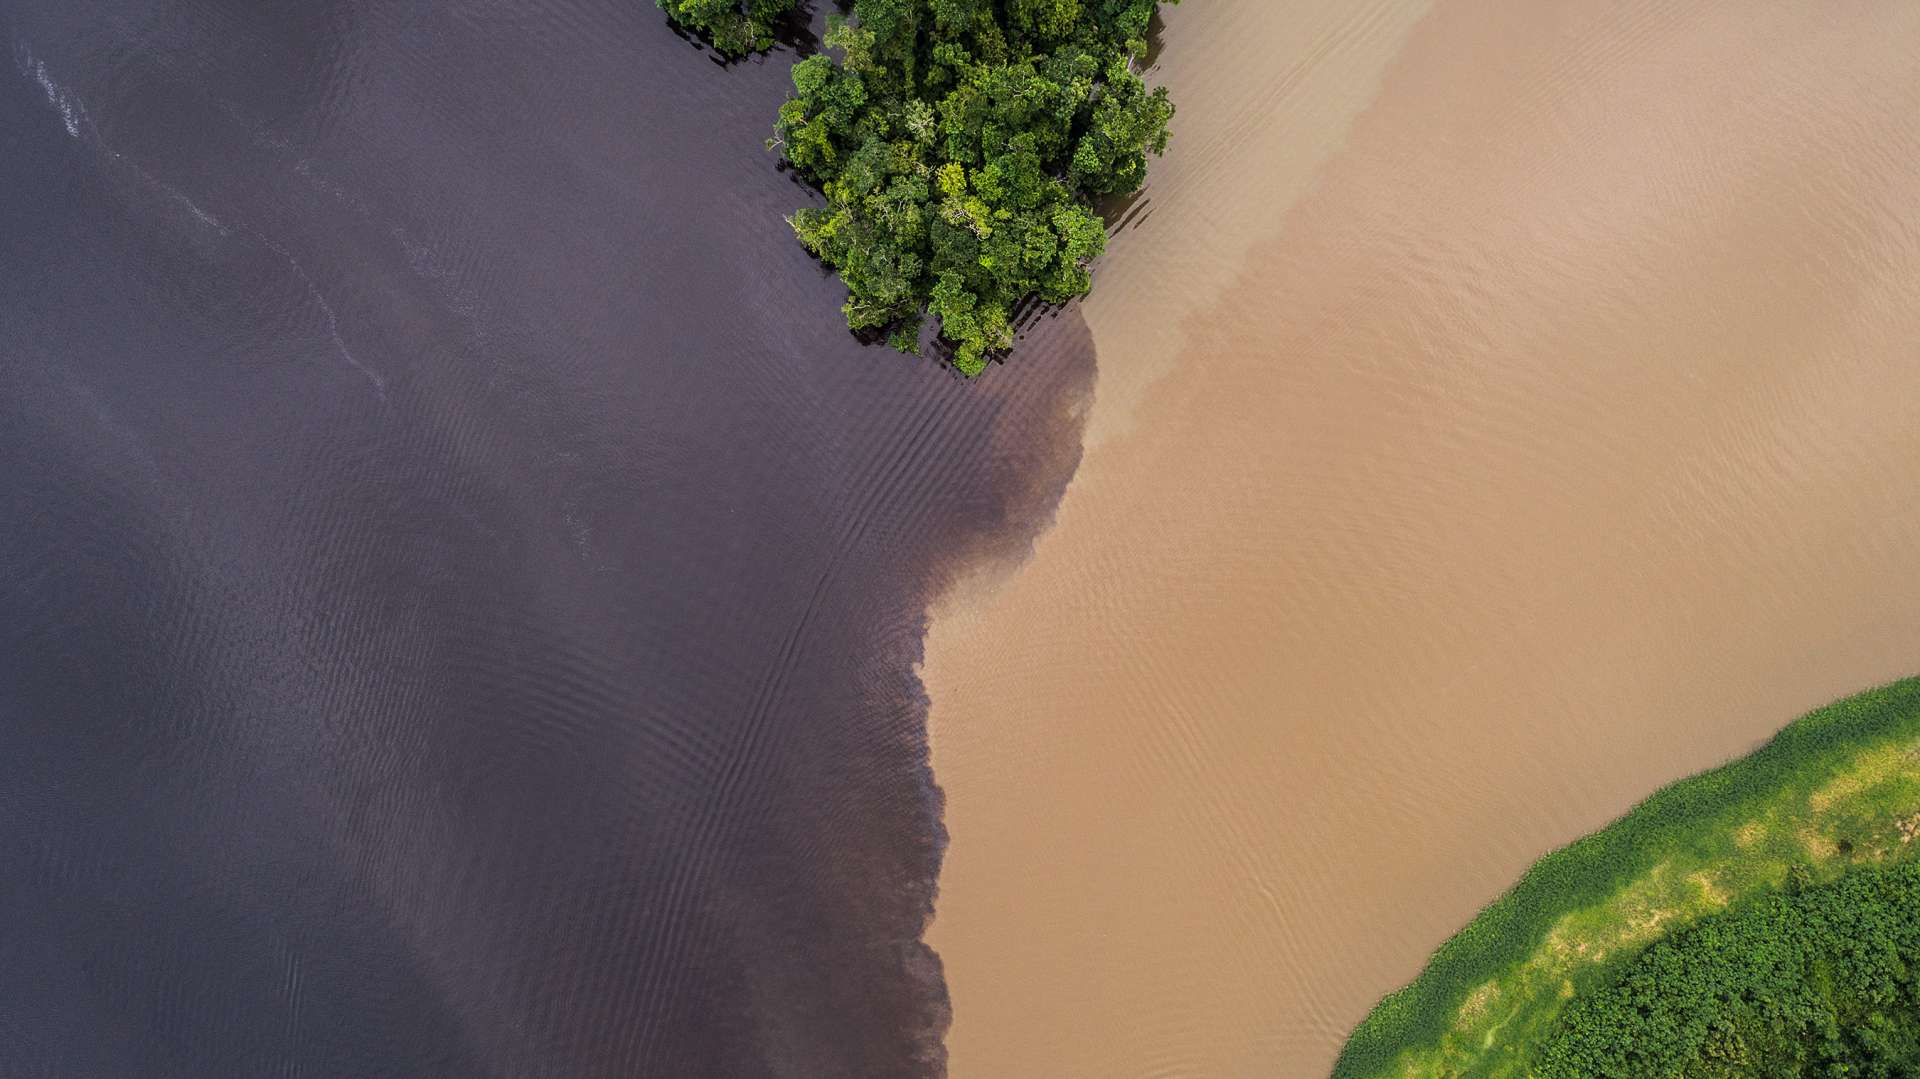 Rivers Collision Costa Rica From Above Enrico Pescantini